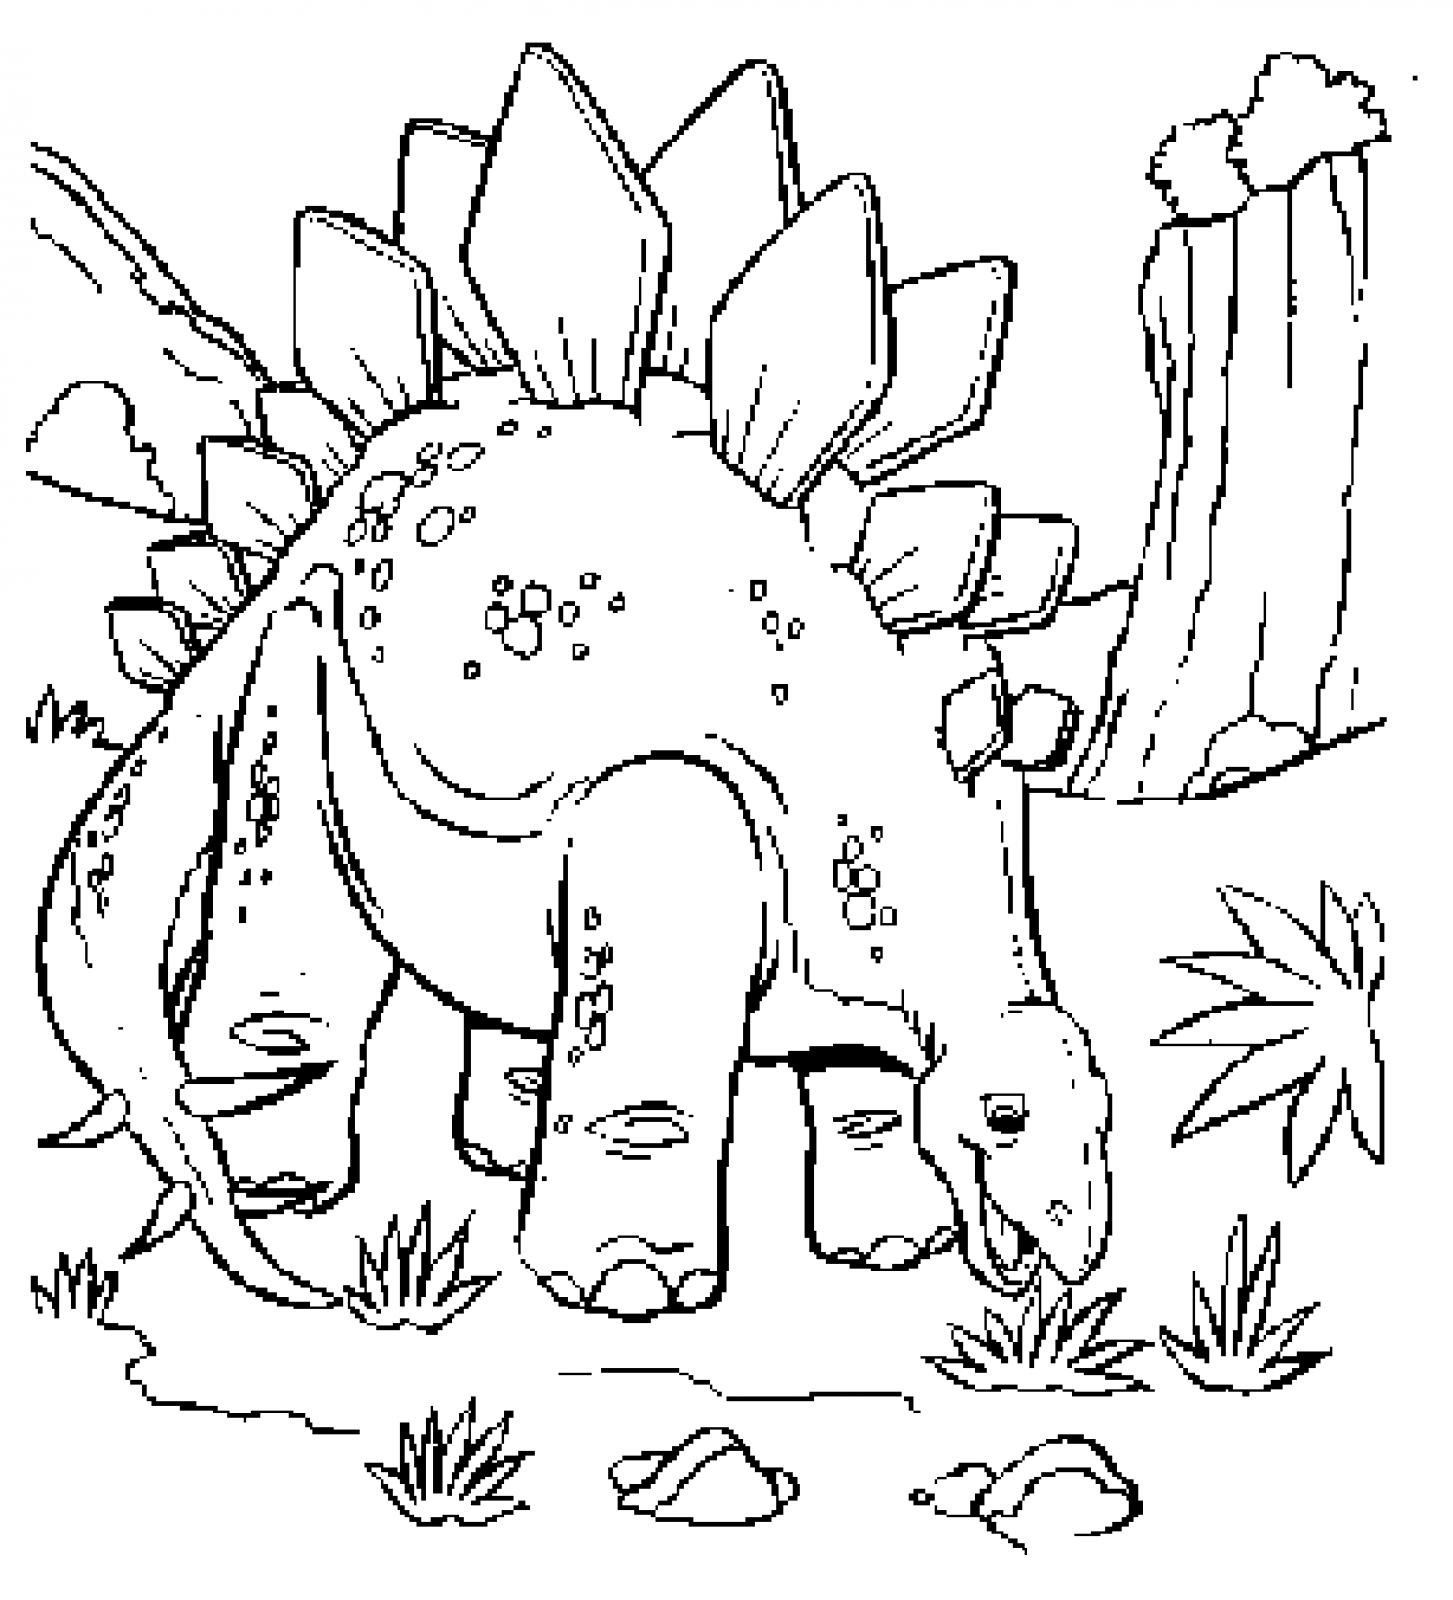 dinosaur coloring #dinosaurs #coloring #pages | Dinosaurs Coloring ...